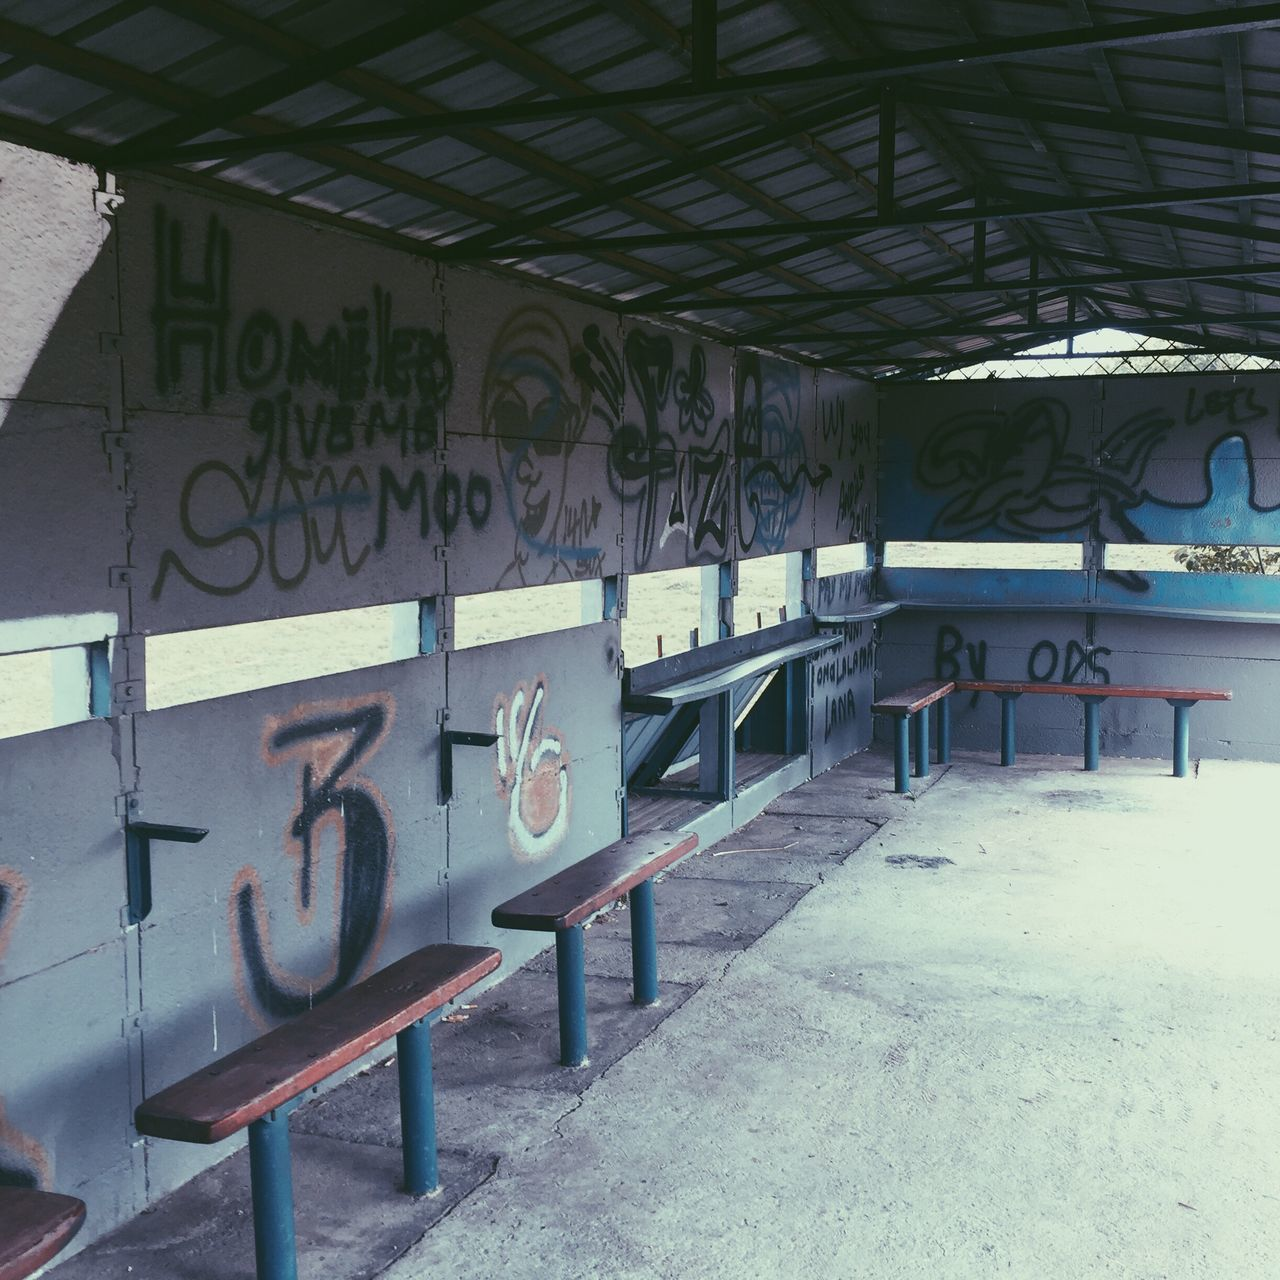 graffiti, architecture, text, built structure, no people, communication, day, outdoors